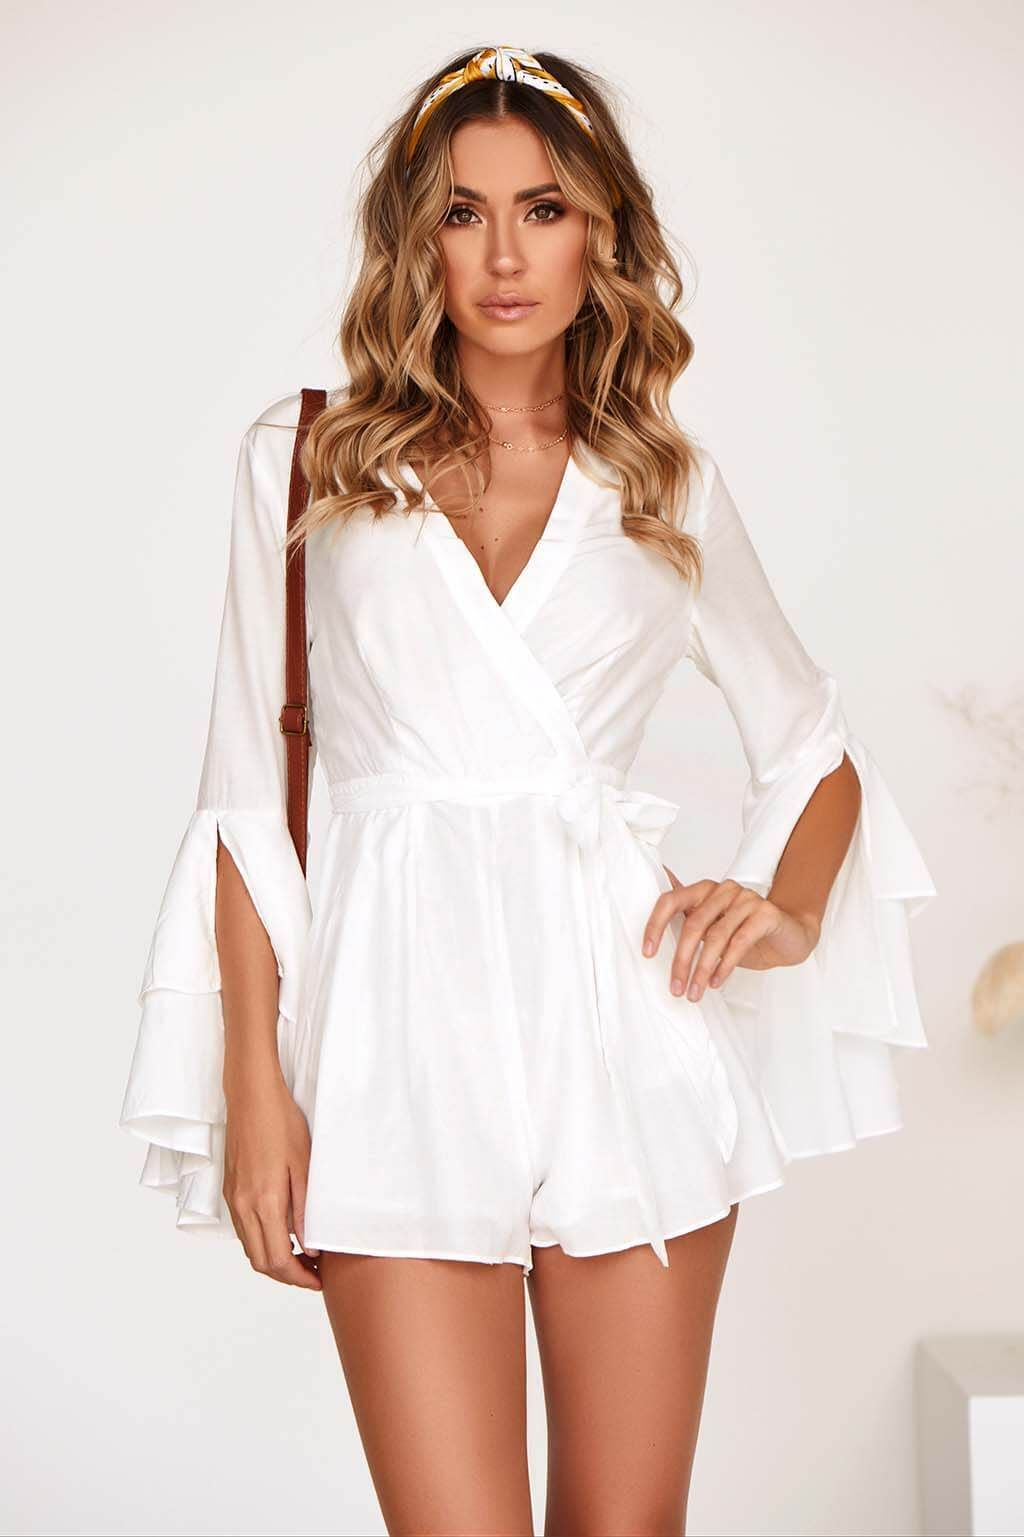 aa53d9fcc45 ROXY PLAYSUIT IN WHITE find your inspiration in the category jumpsuits